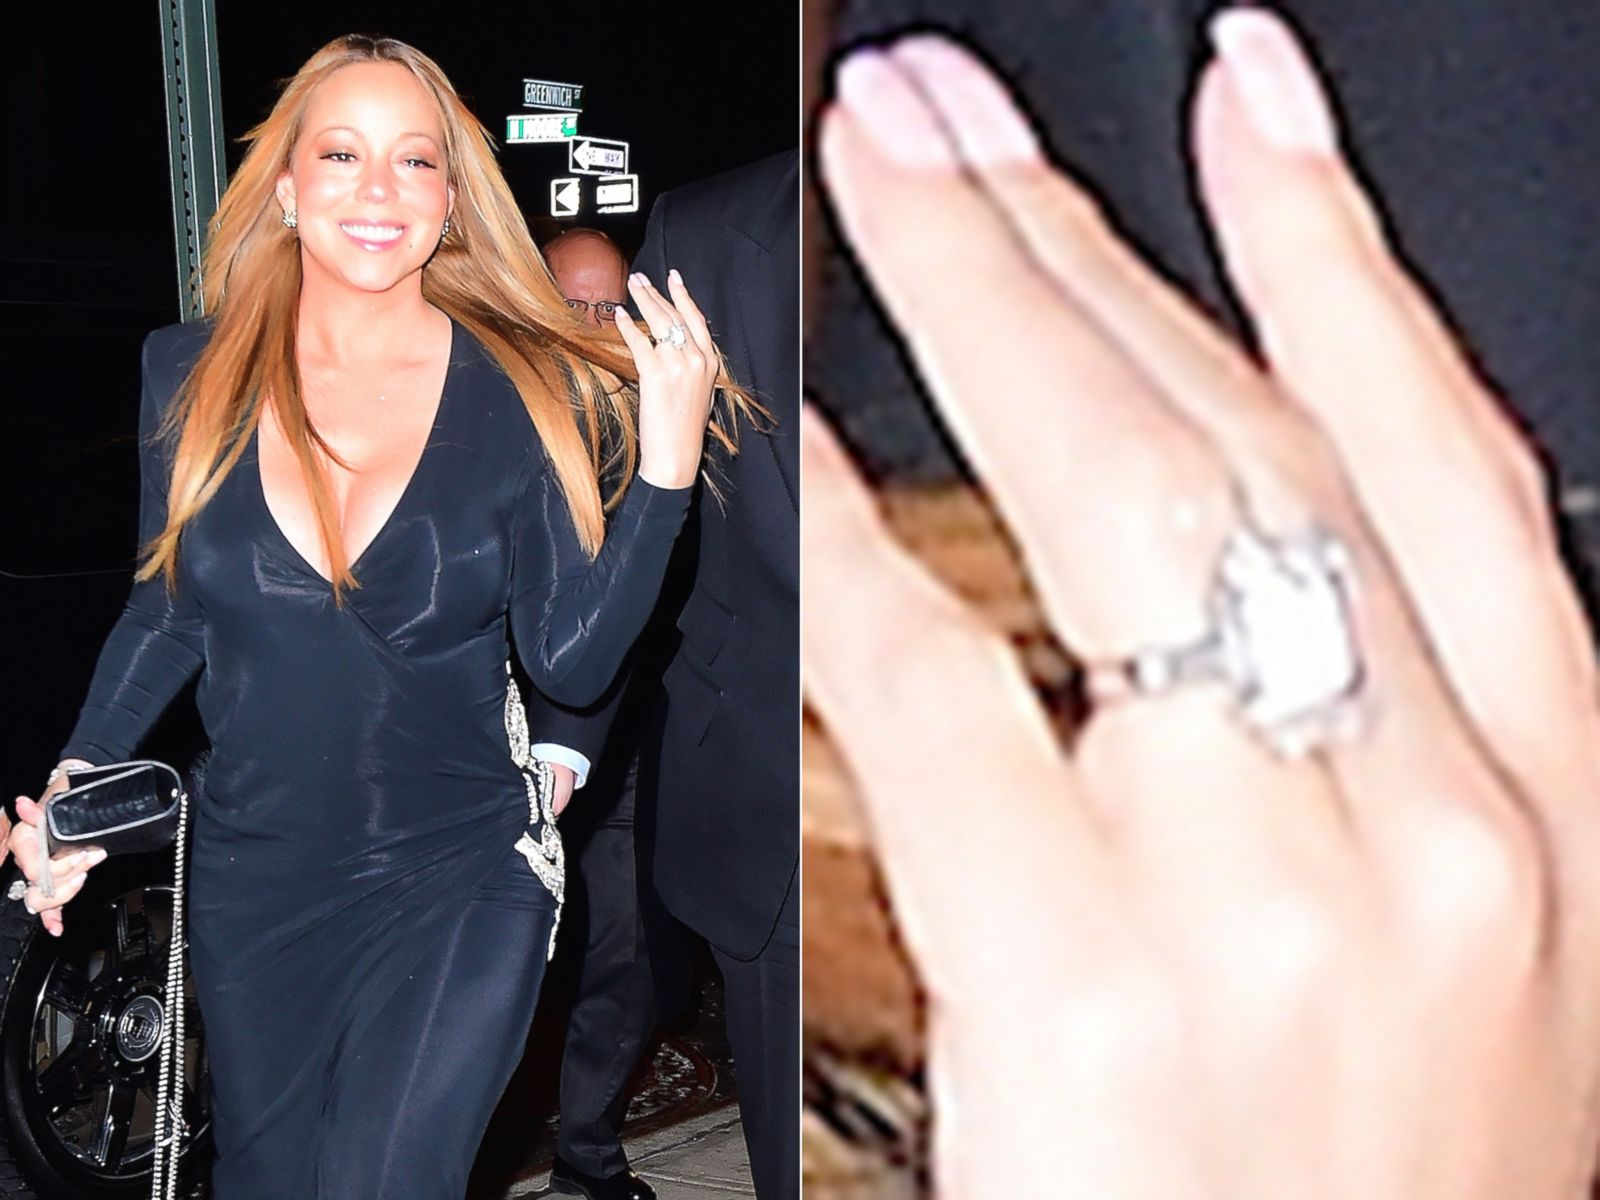 mariah carey sports some new bling on that finger picture hollywoods biggest engagement rings abc news - Mariah Carey Wedding Ring